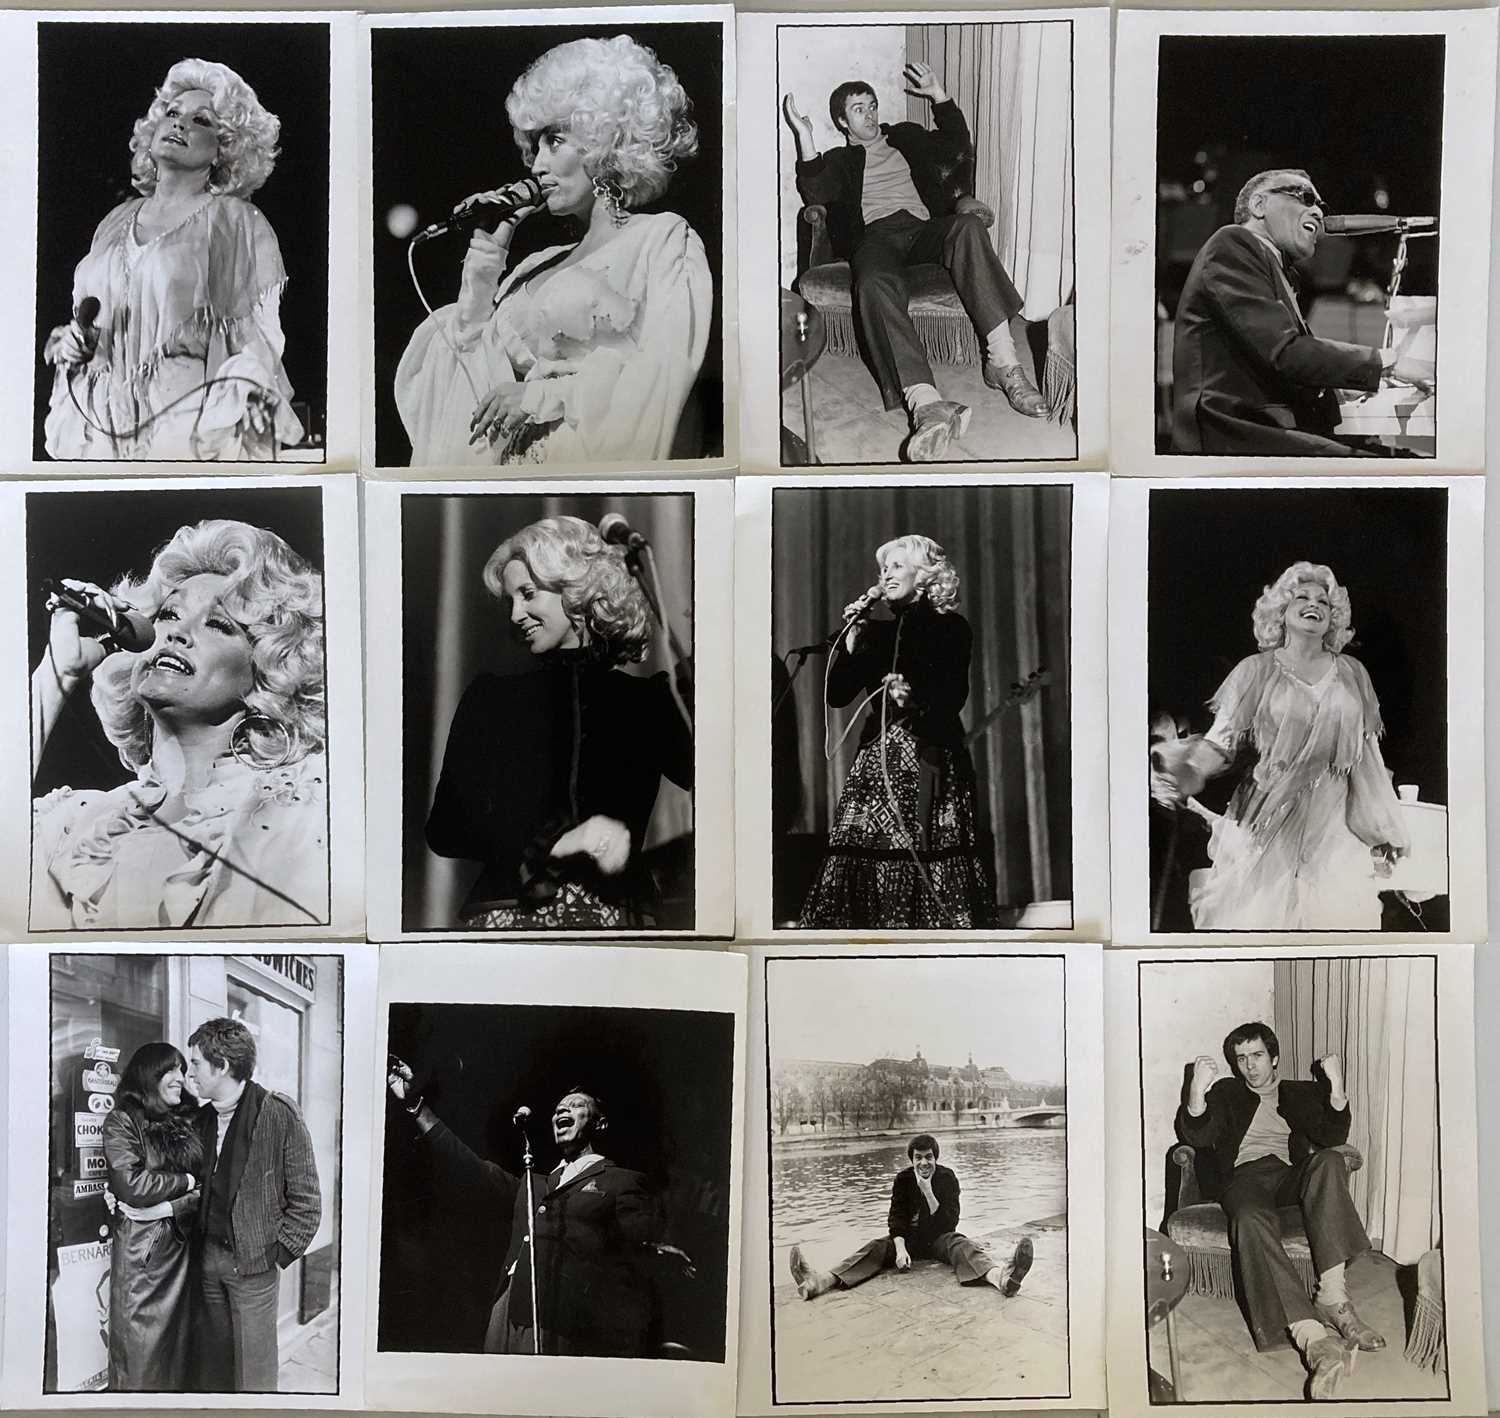 MUSIC PHOTOGRAPHS - CLASSIC ROCK AND POP - U2 / KATE BUSH AND MORE. - Image 7 of 7